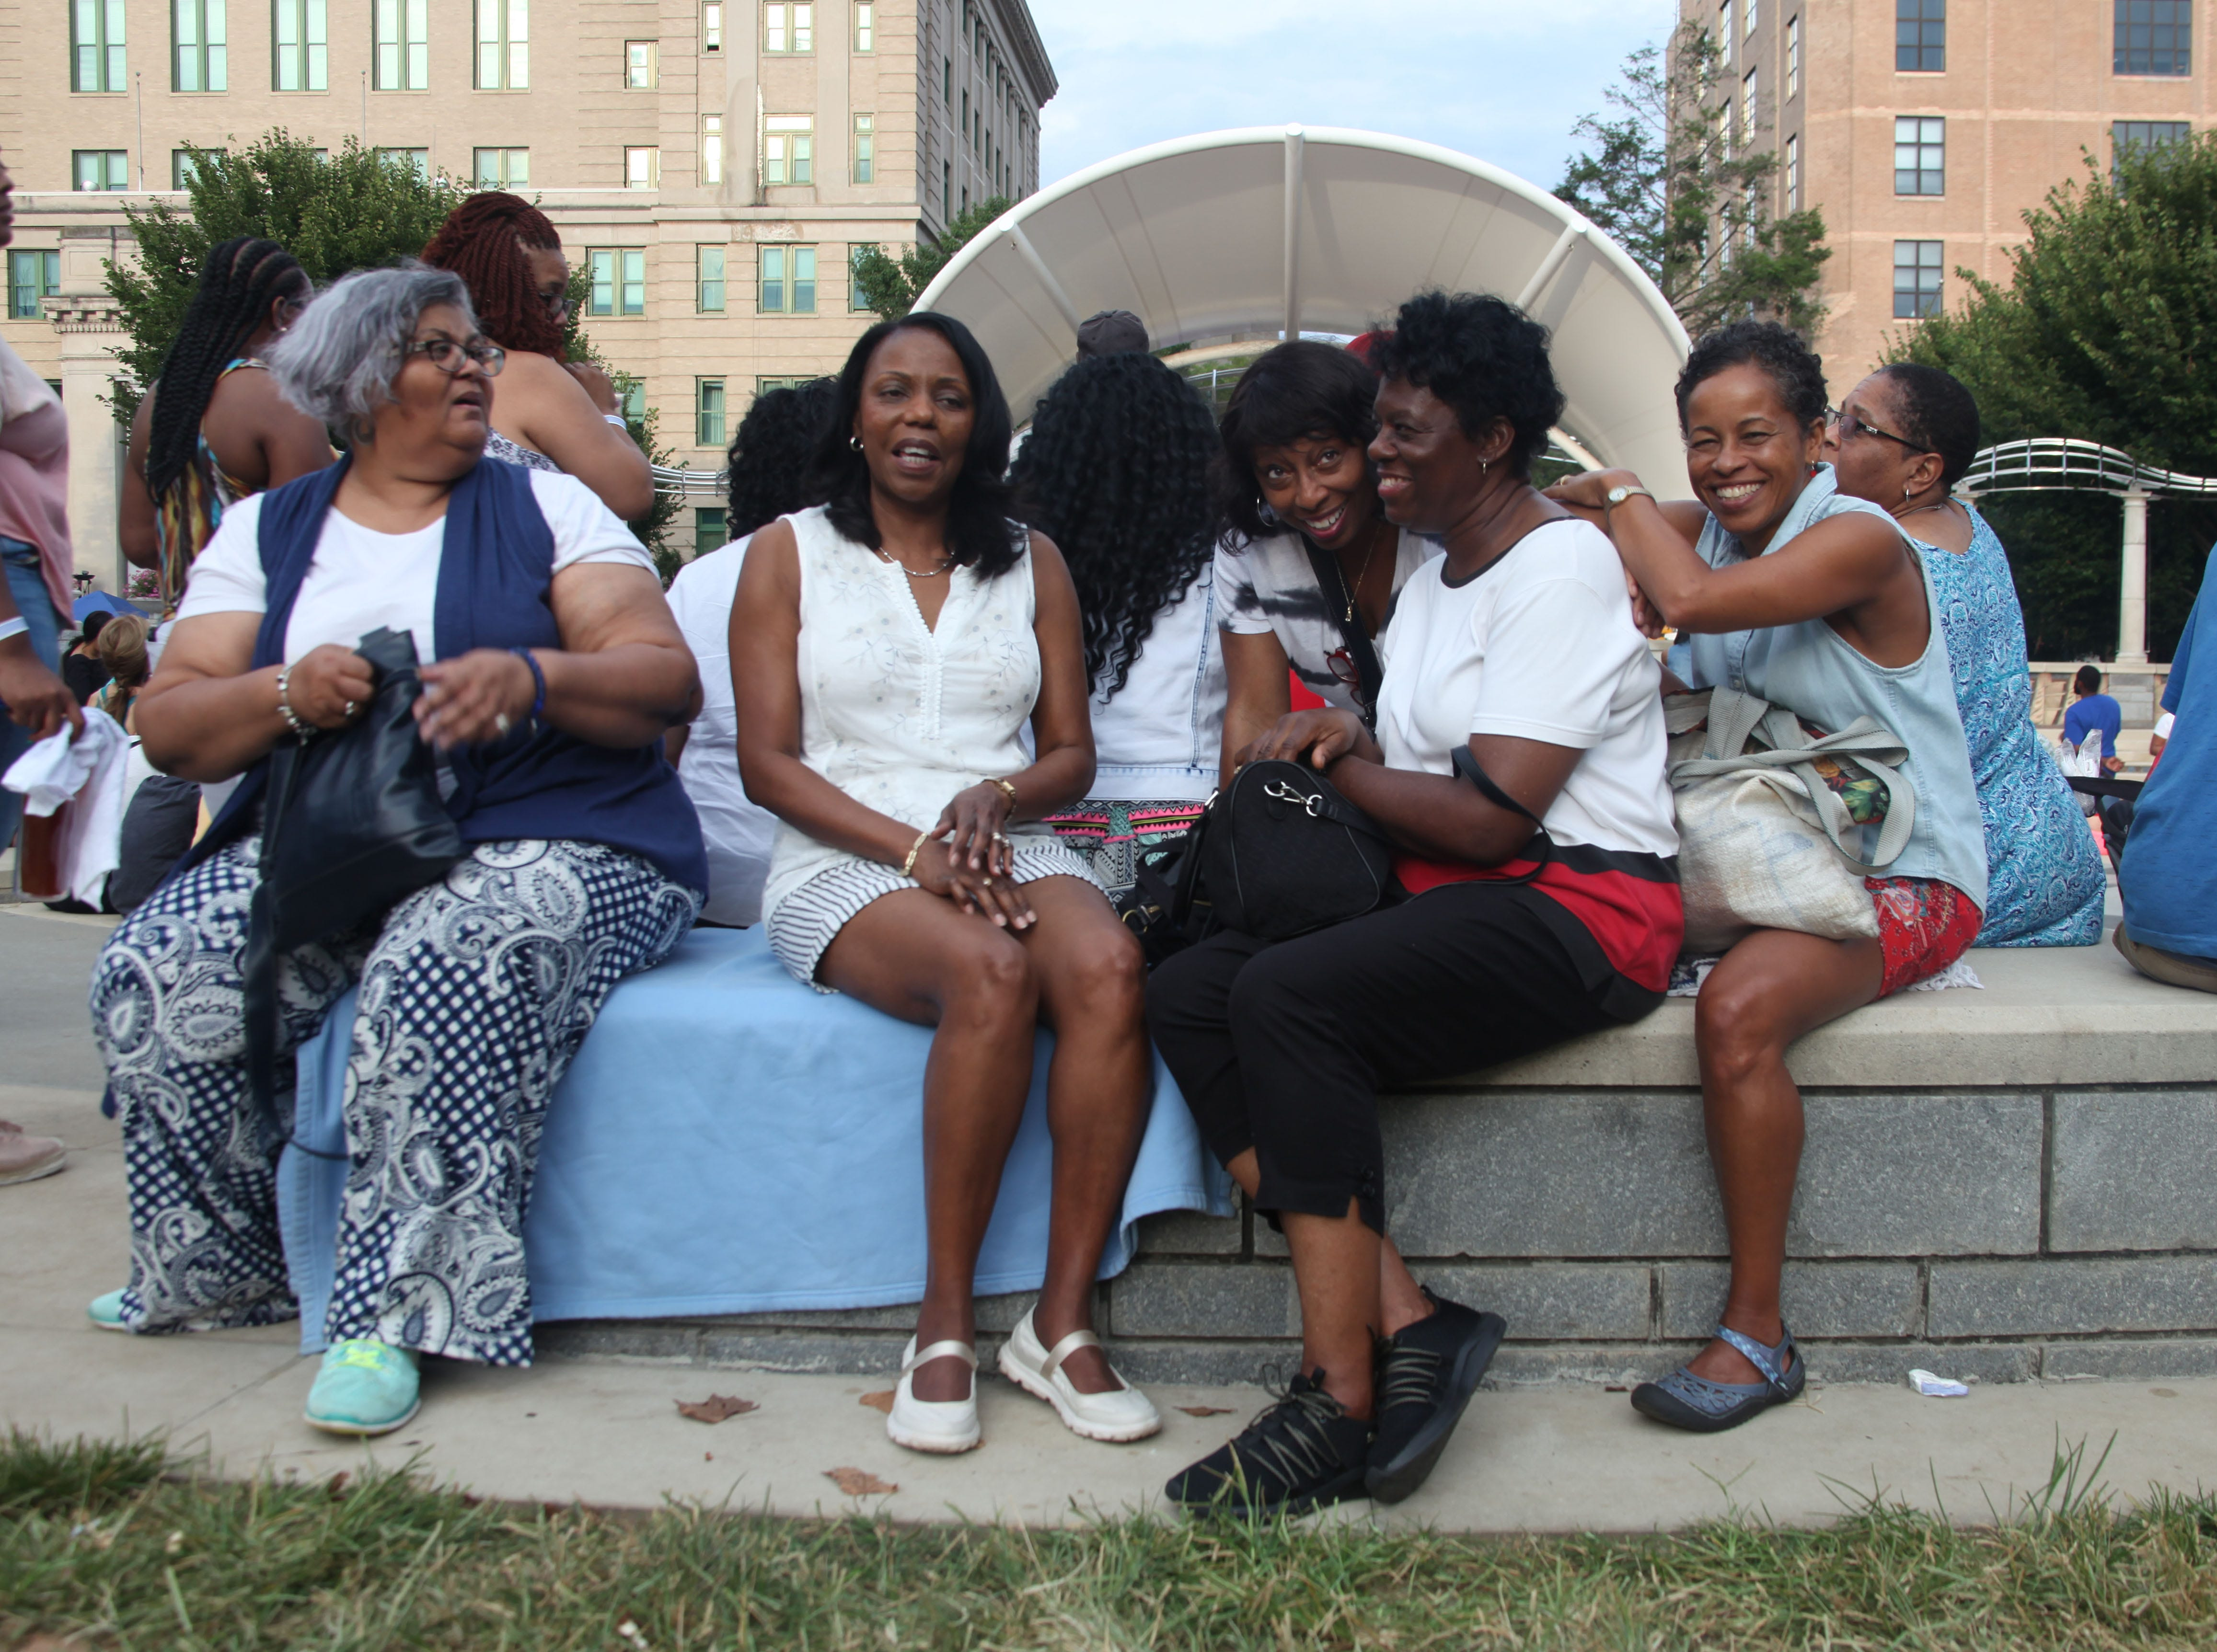 Attendees enjoy the 2018 Goombay Festival at the Roger McGuire Green in Pack Square Park on Sept. 8, 2018.